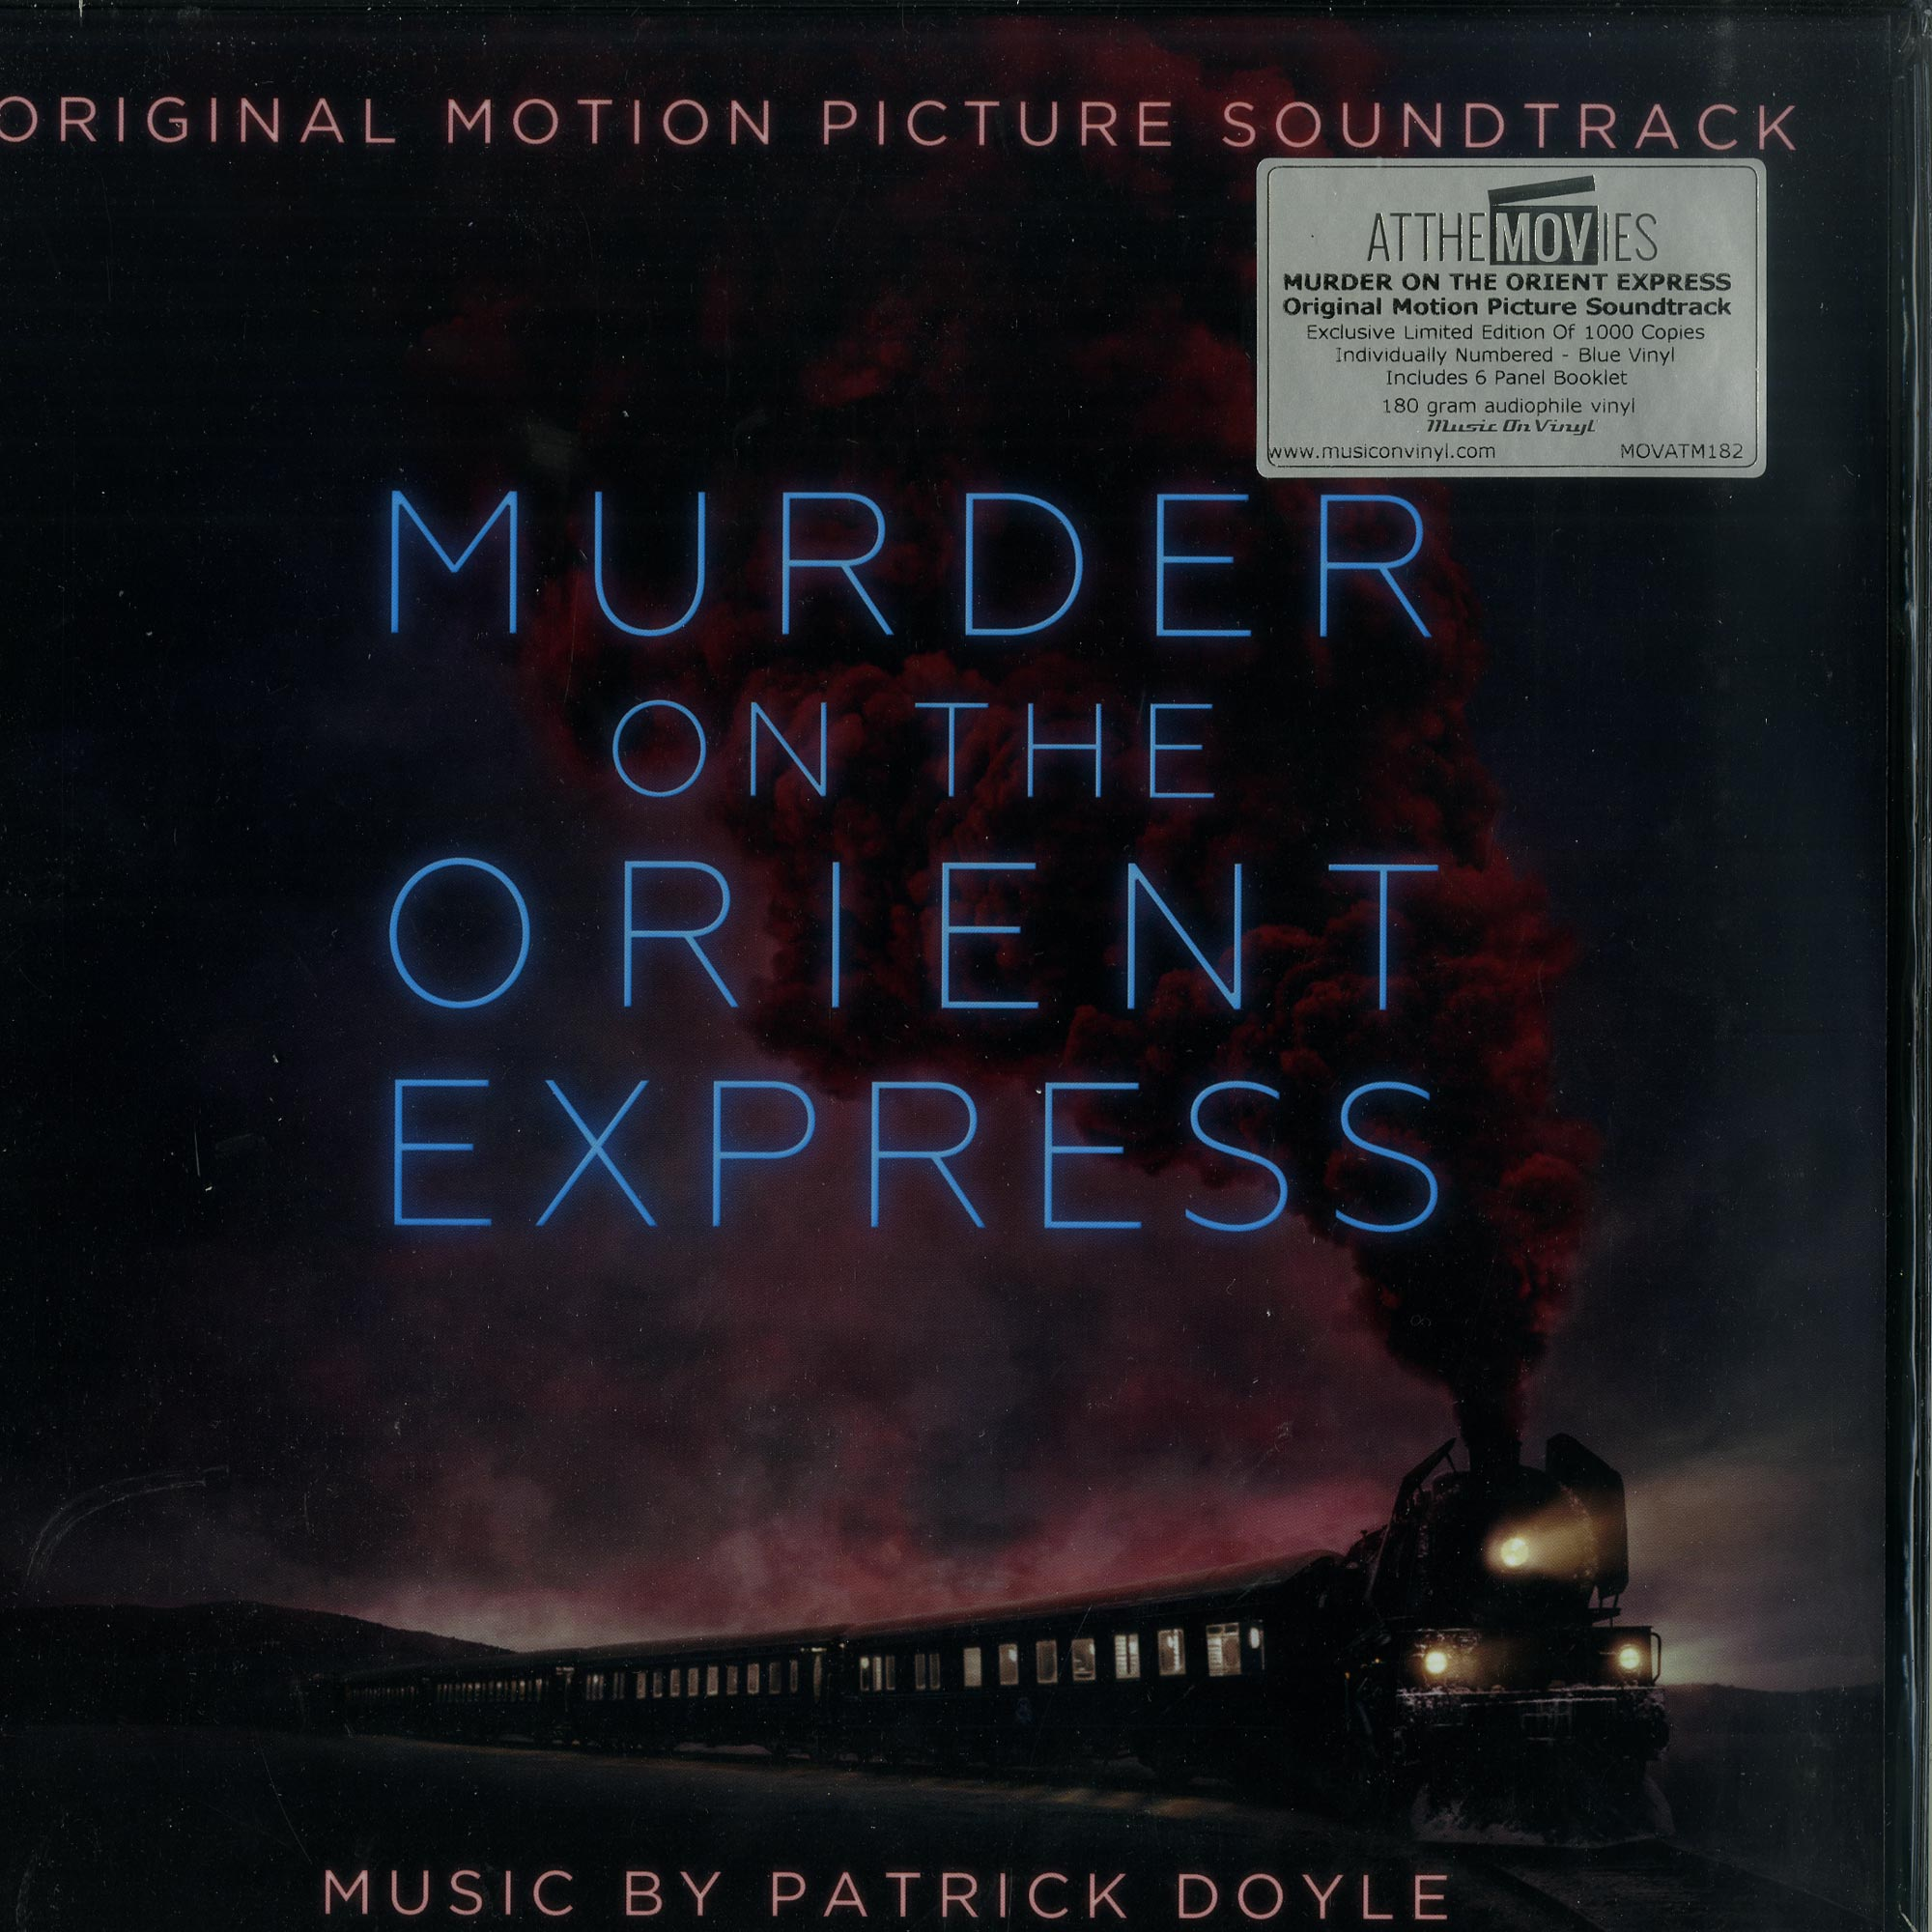 Patrick Doyle - MURDER ON THE ORIENT EXPRESS O.S.T.